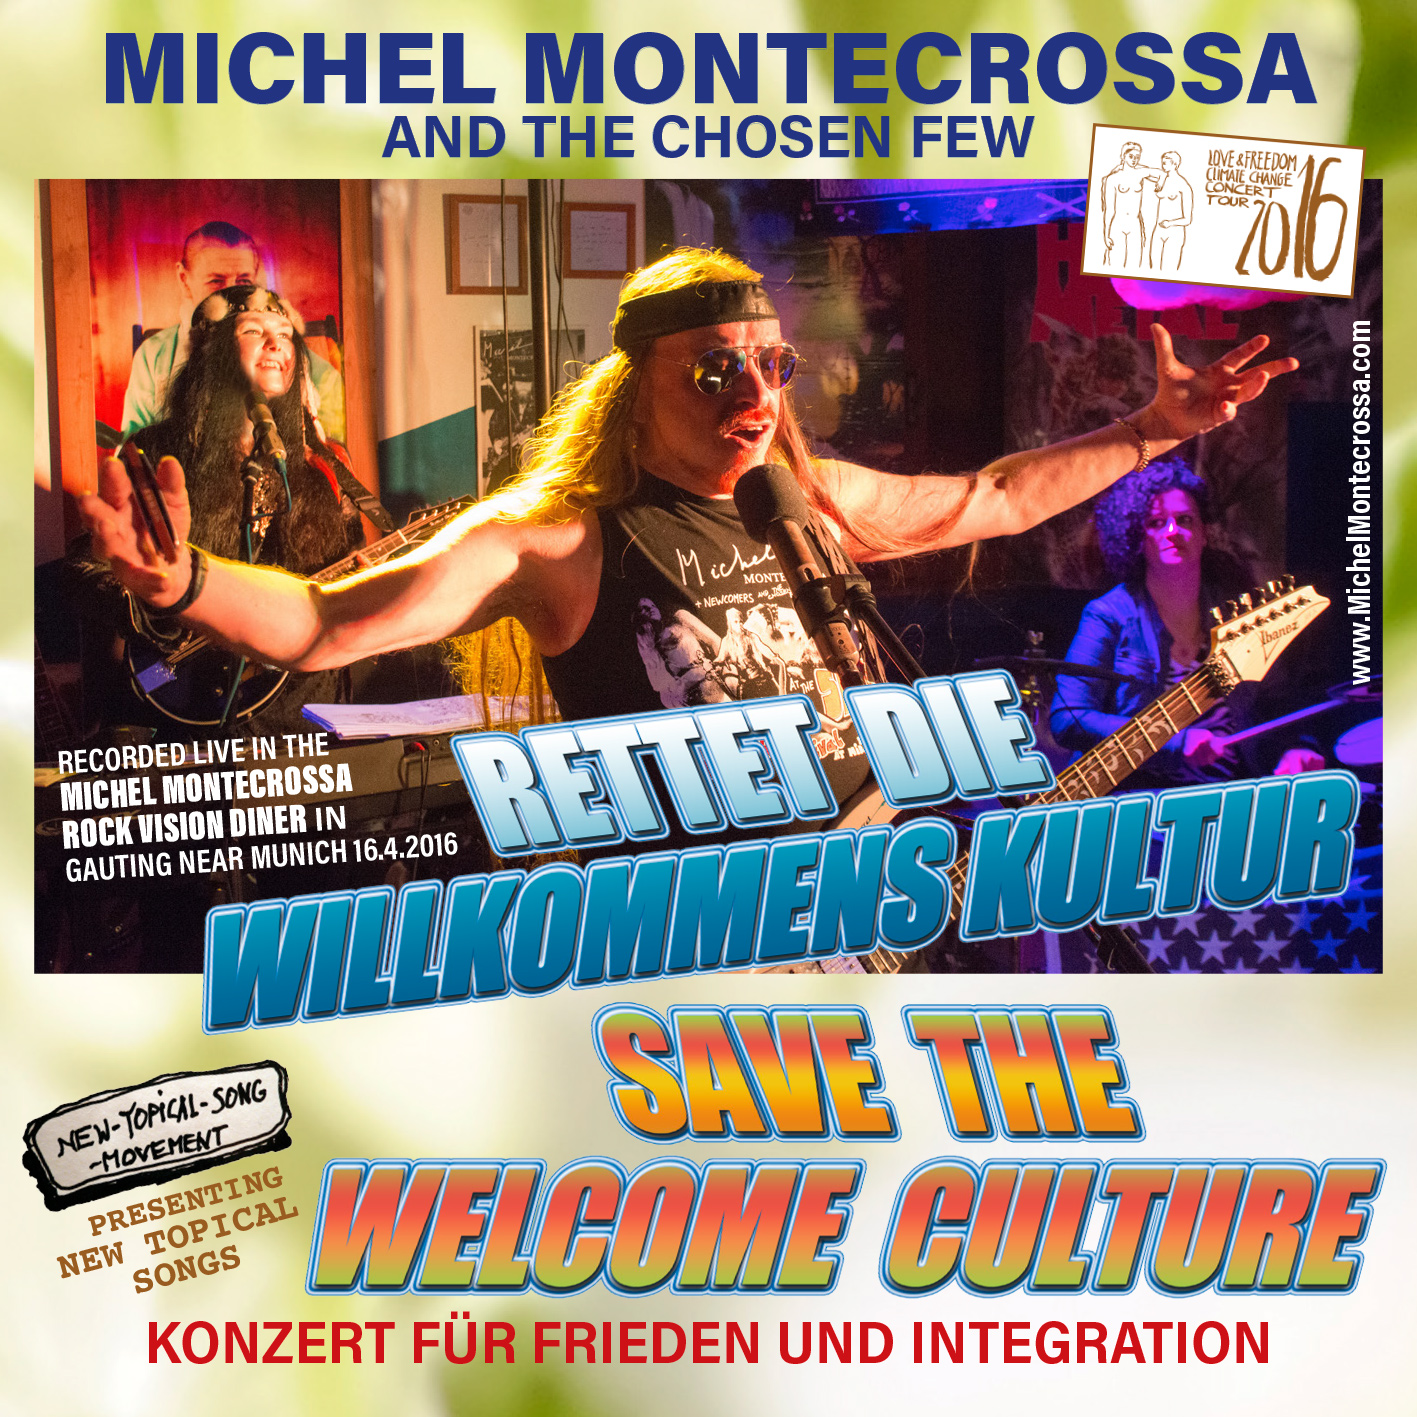 Rettet die Willkommens Kultur – Save The Welcome Culture Concert